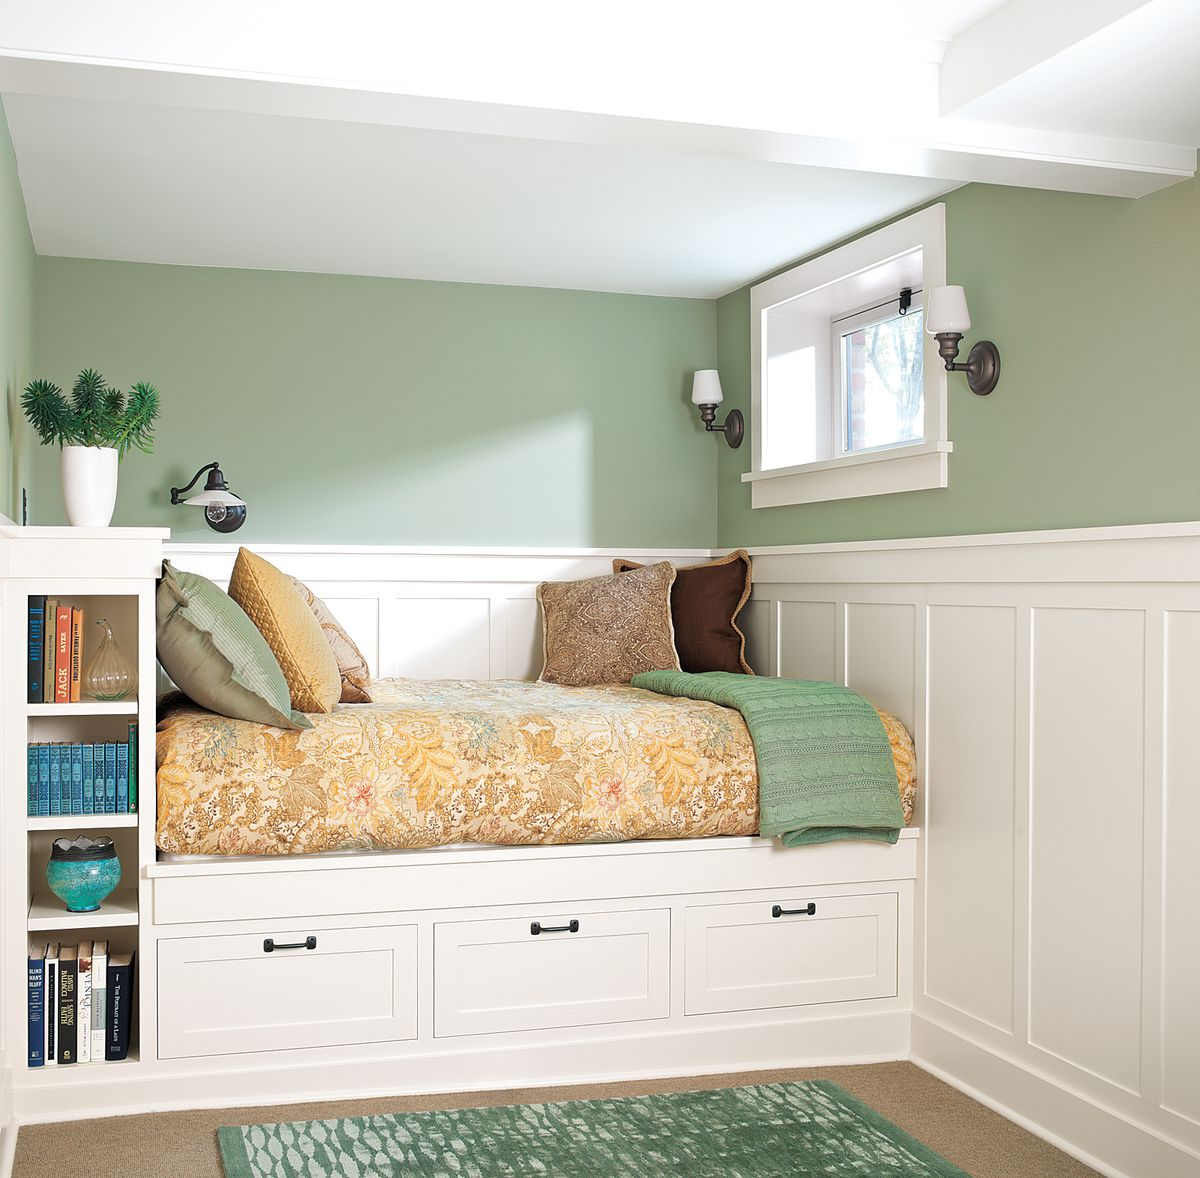 Bed and shelves built into a finished basement.